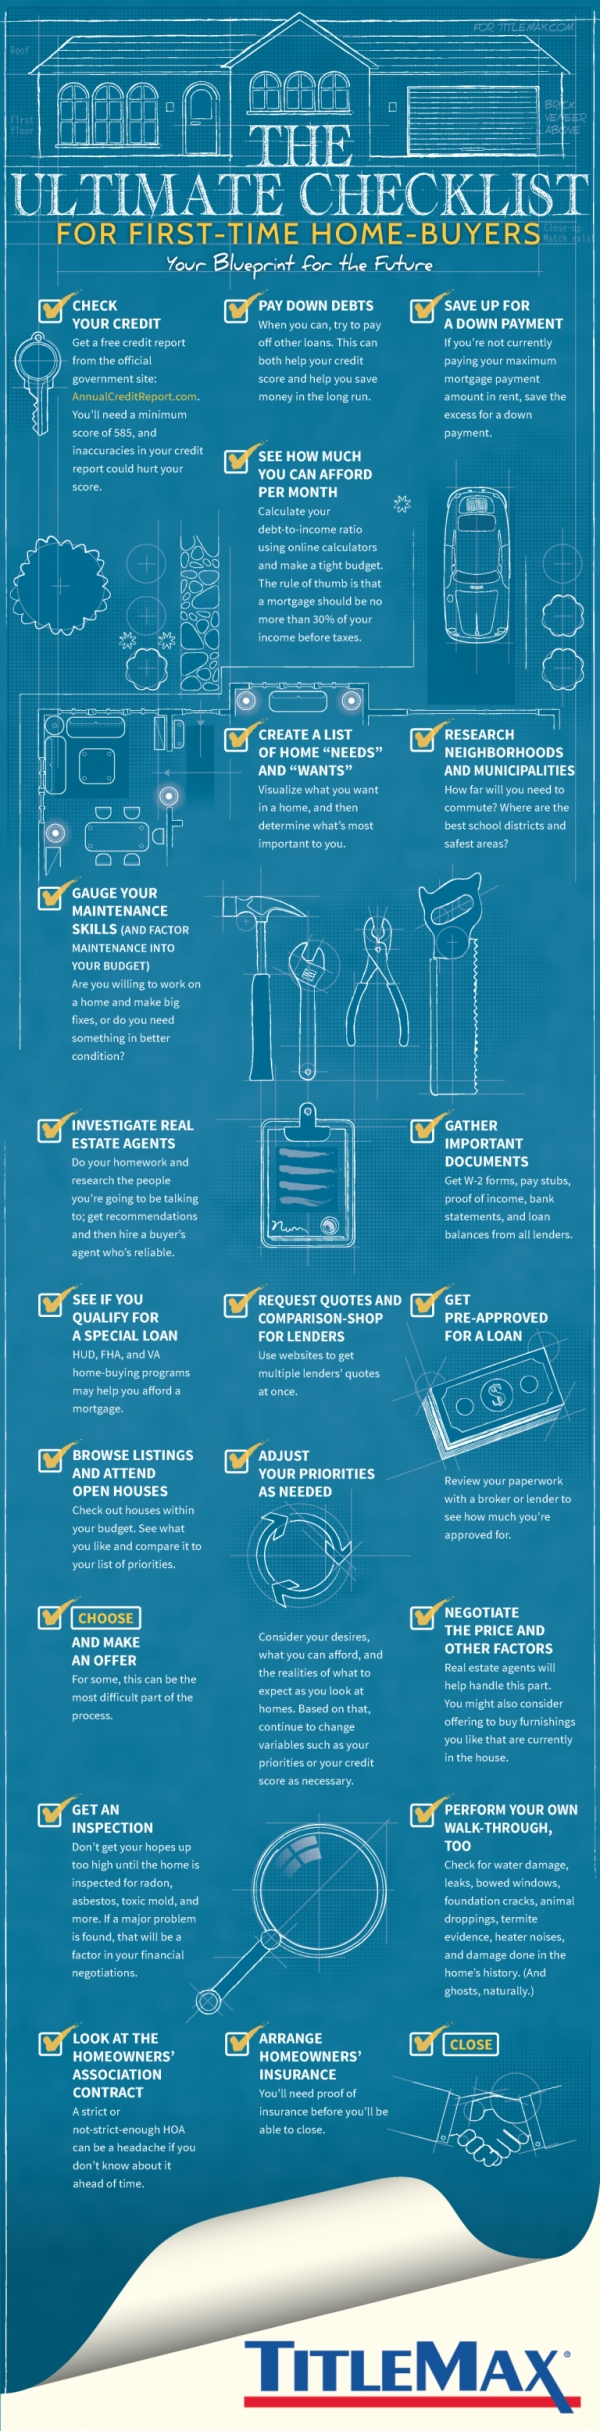 The Ultimate Checklist For First Time Home Buyers